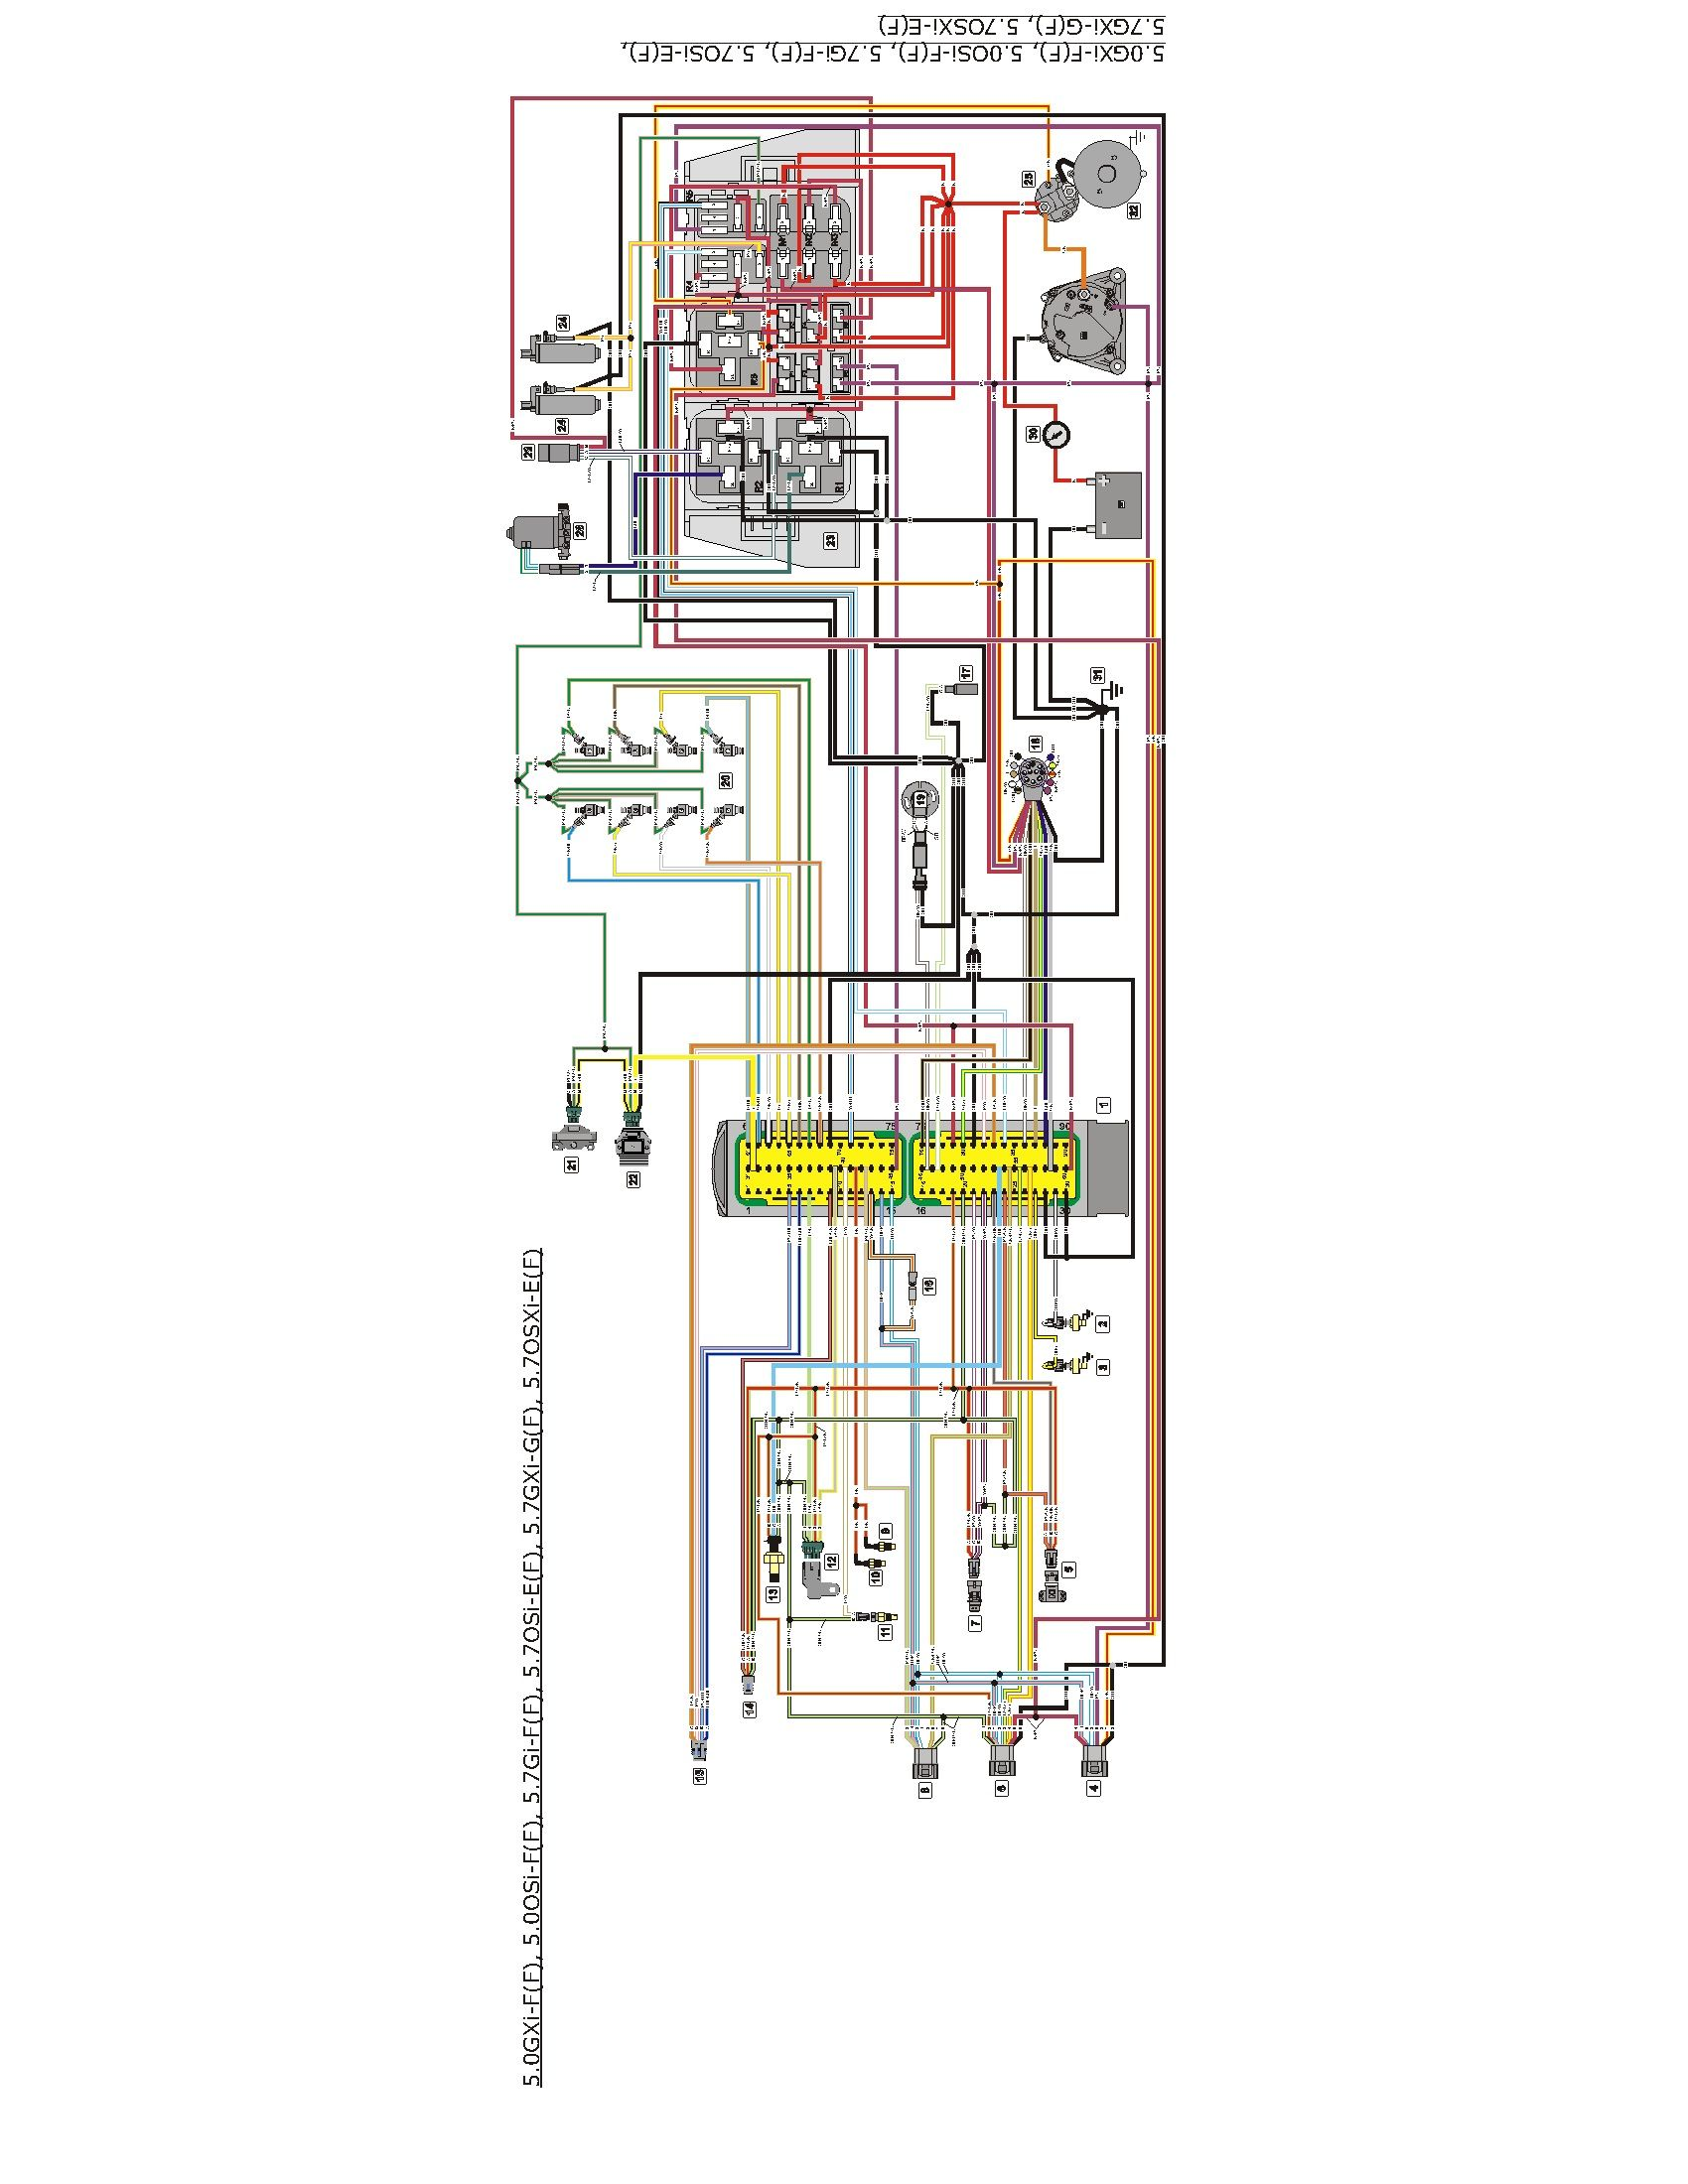 Volvo Penta Distributor Diagram Cuts Of Beef Chart 5 7 Engine Wiring Boat Pinterest